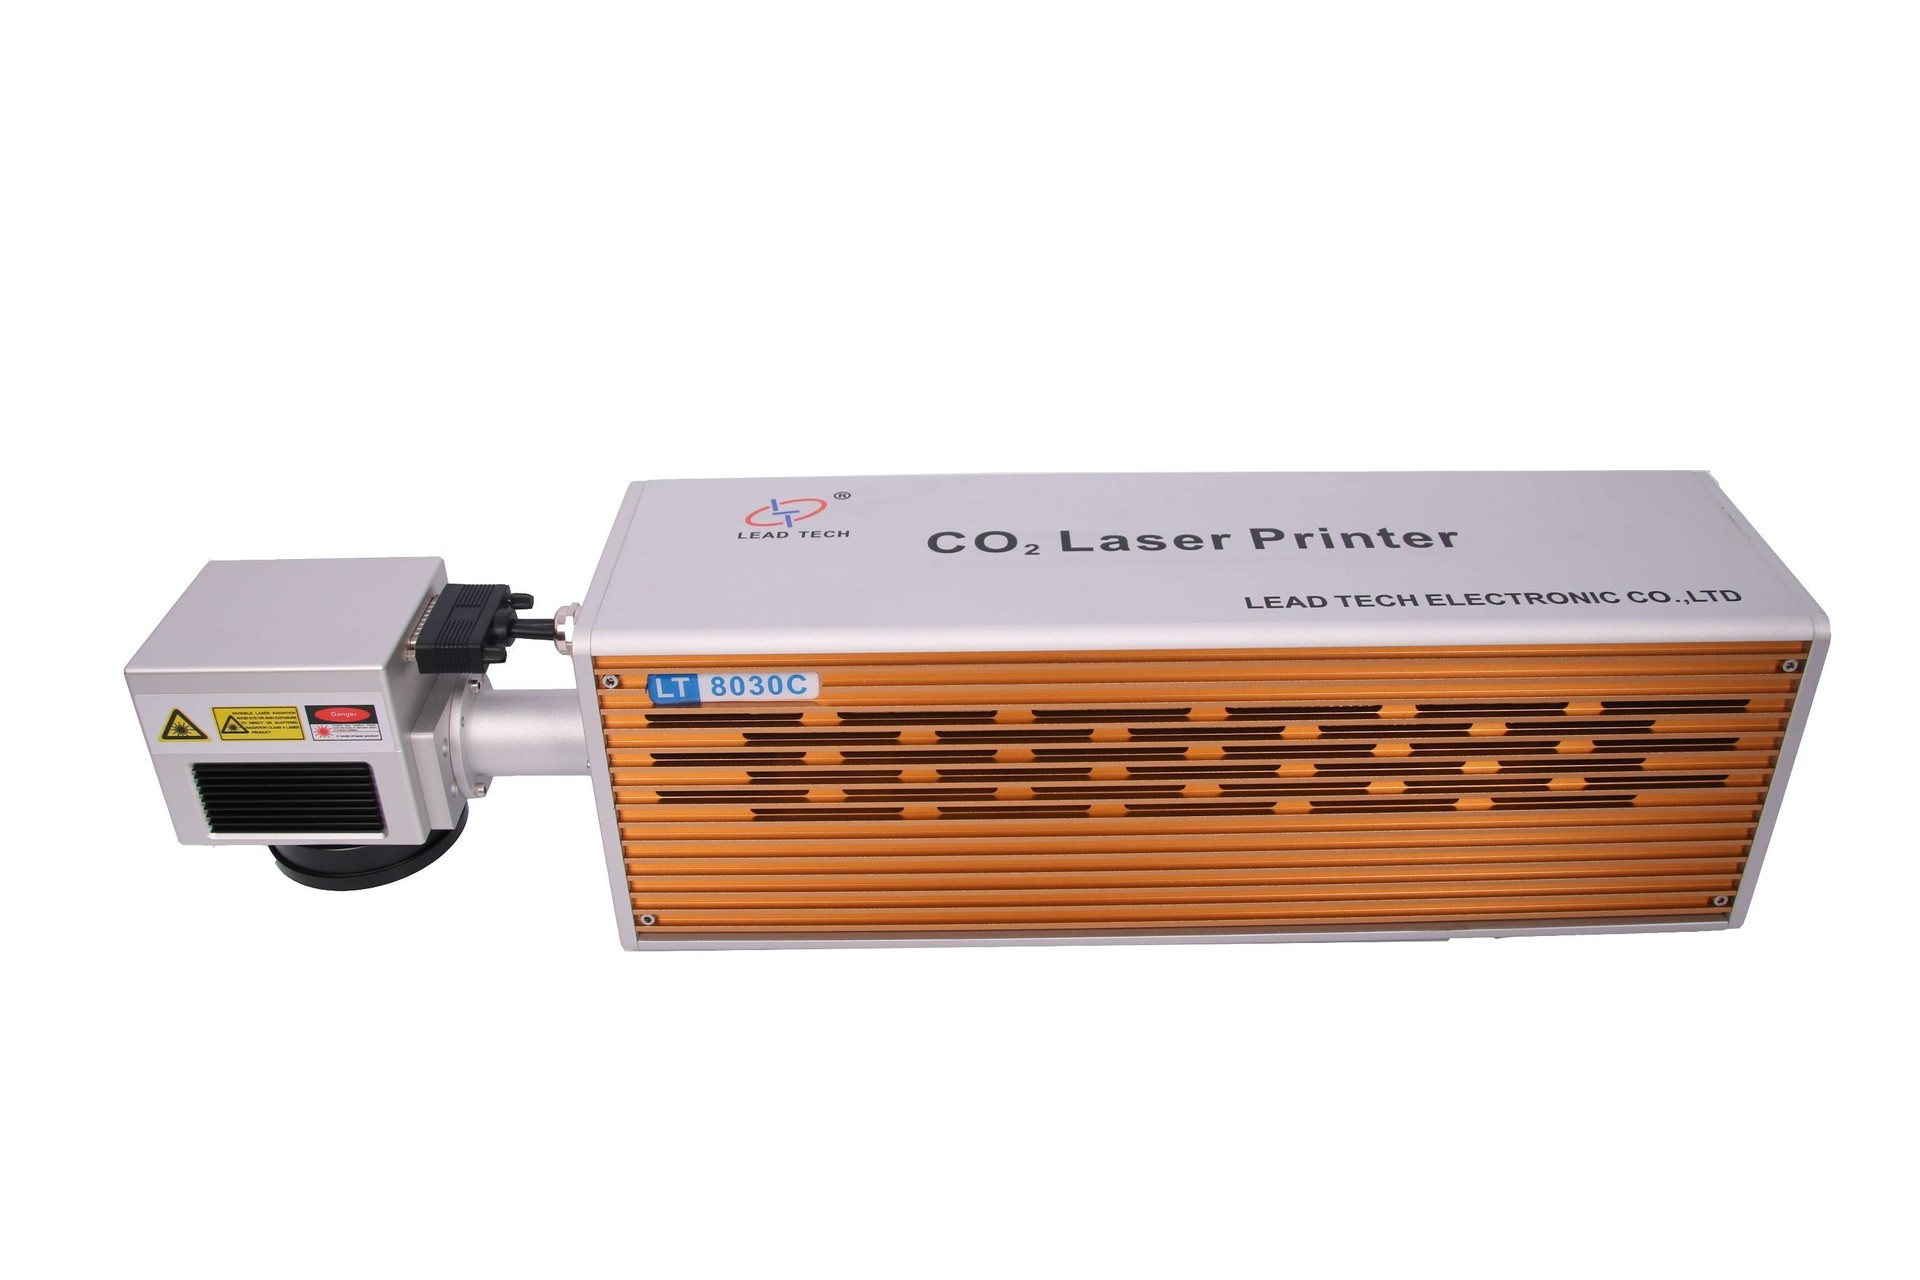 Lt8020c/Lt8030c CO2 20W/30W High Precision Laser Engraving Printer for Stainless Steel Metal